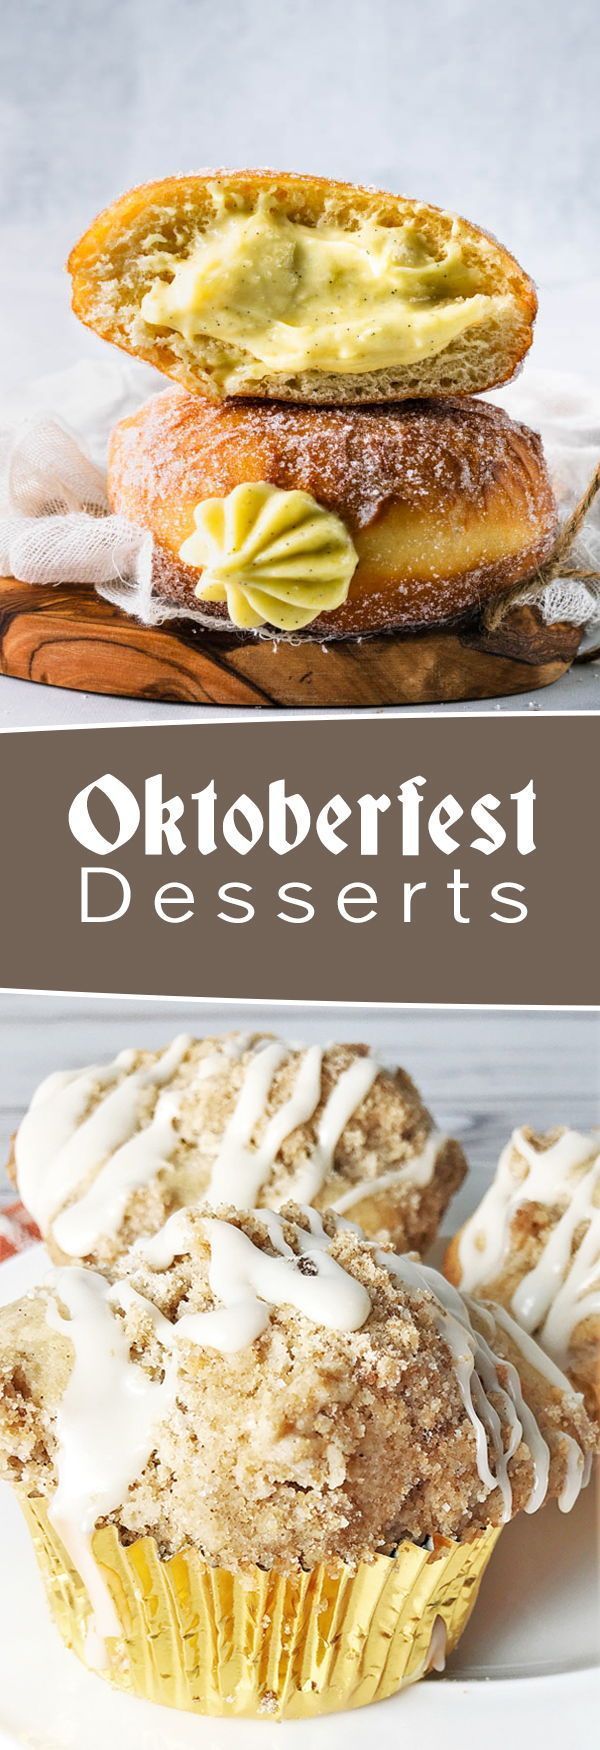 Oktoberfest Recipes: From classic to creative German-inspired recipes to celebrate Oktoberfest #octoberfestfood